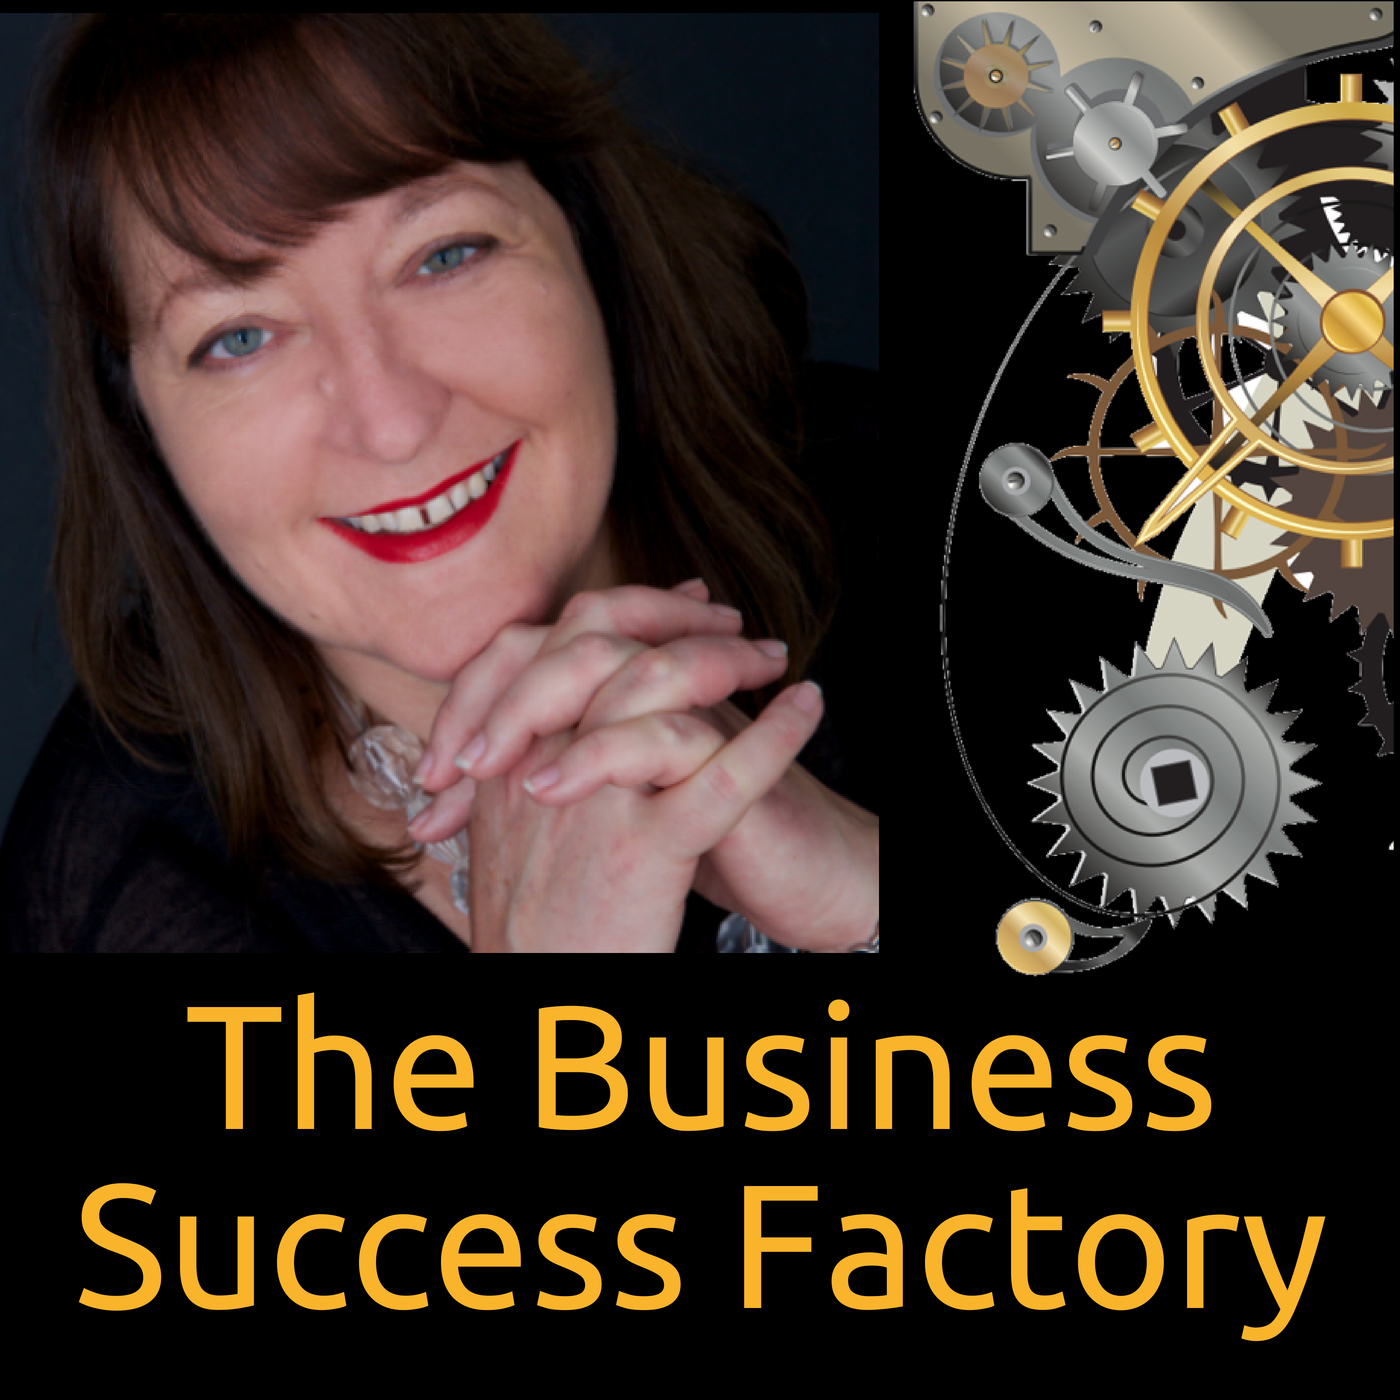 The Business Success Factory | Entrepreneur & Business Success Interviews by Nicola Cairncross